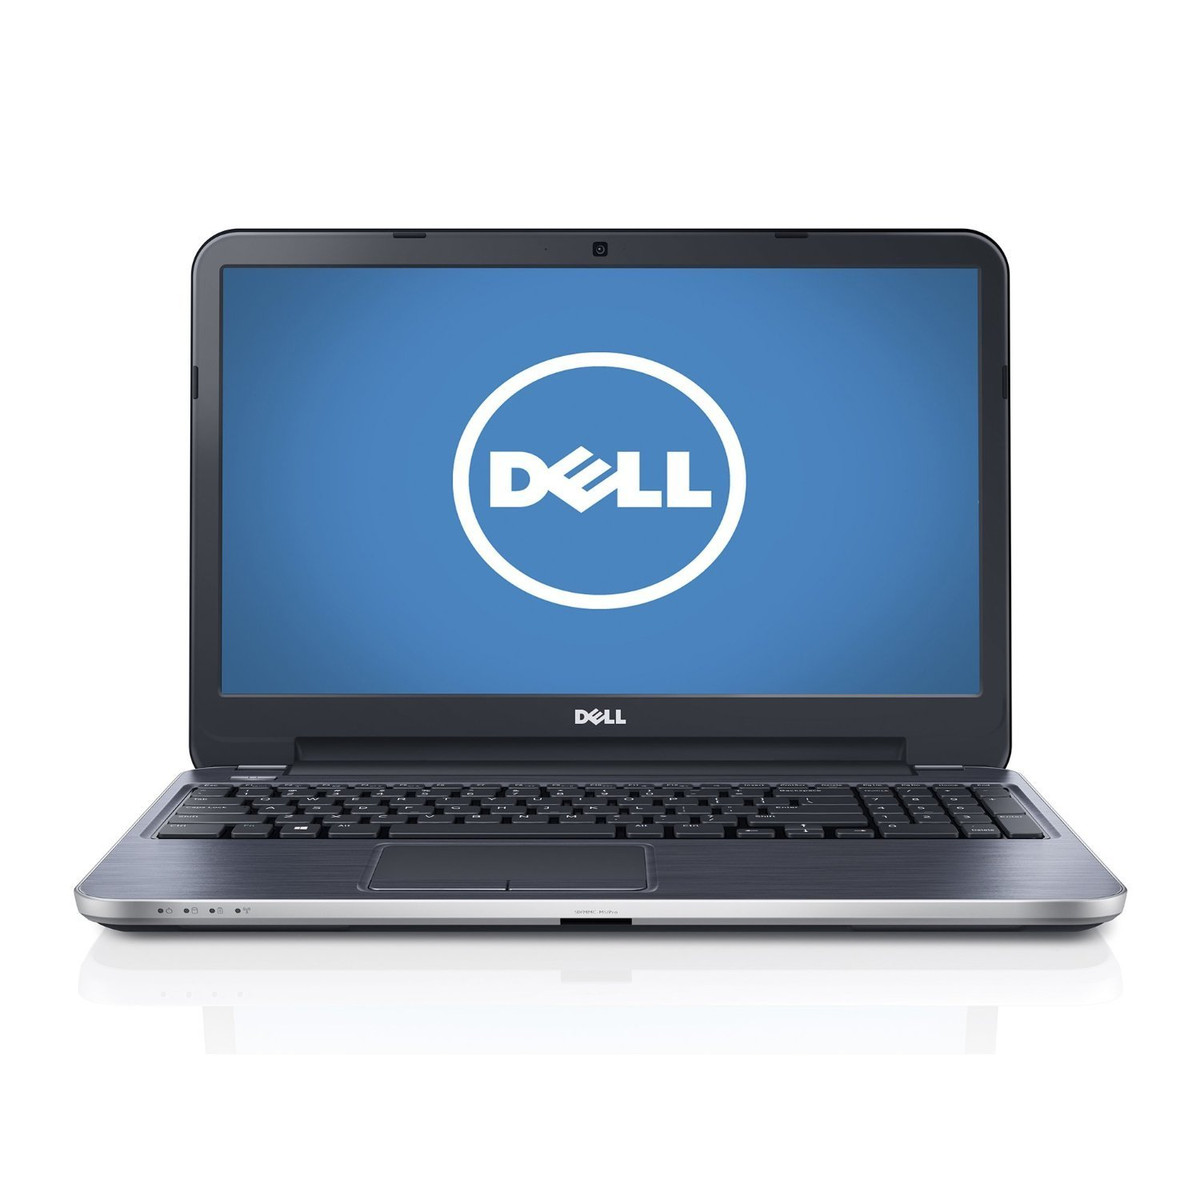 Notebook: Dell Inspiron 153537  Inspiron 15 Series